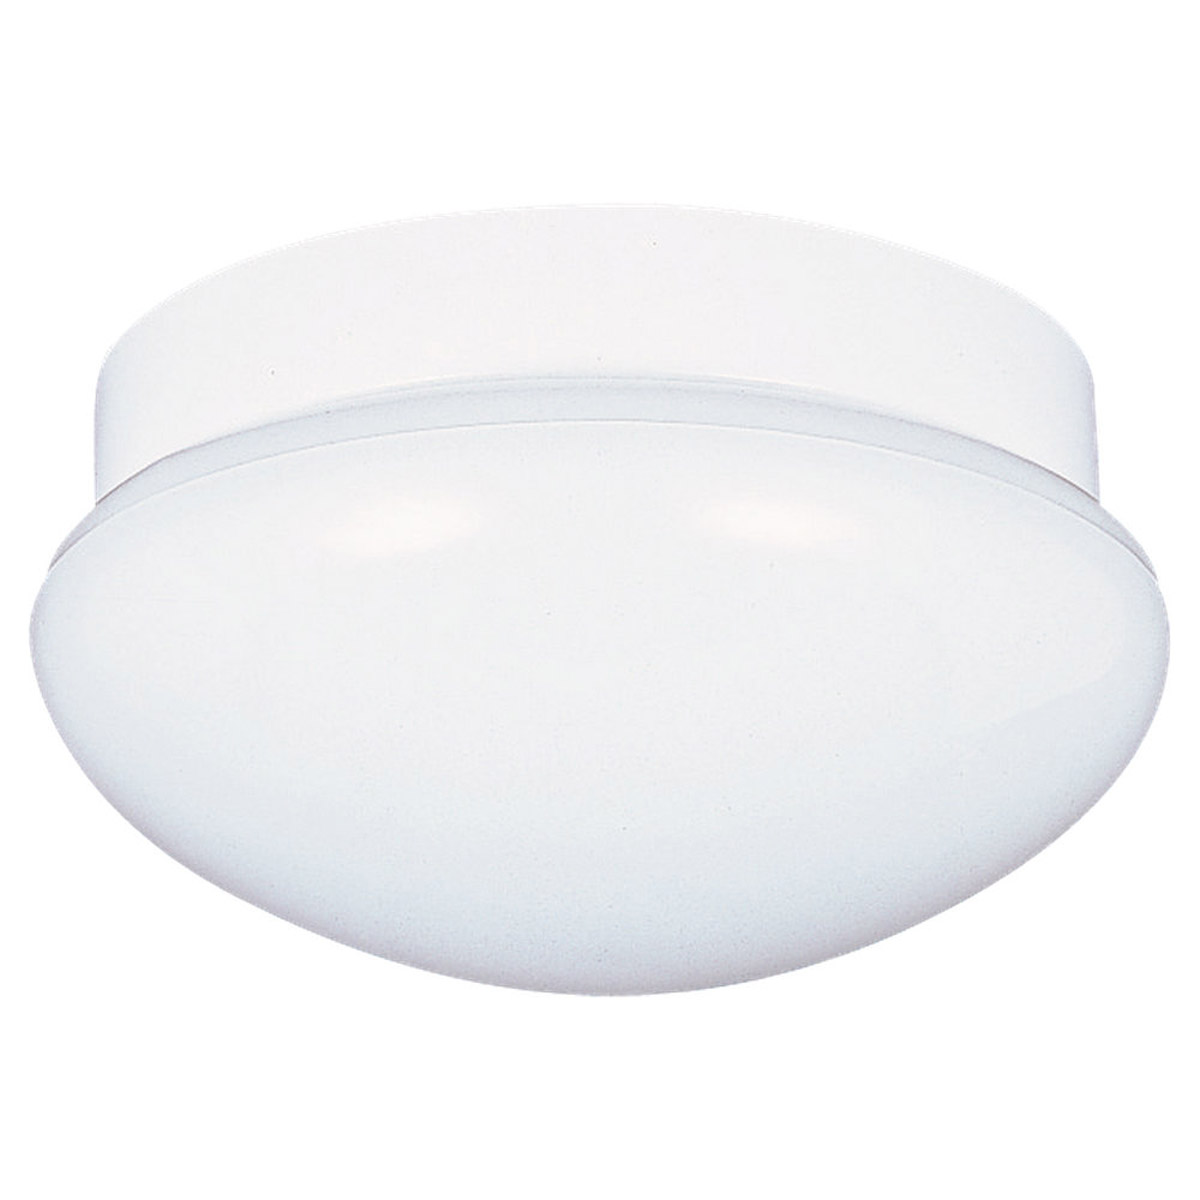 Sea Gull Lighting Flush Mount 3 Light Flush Mount in White 7640-15